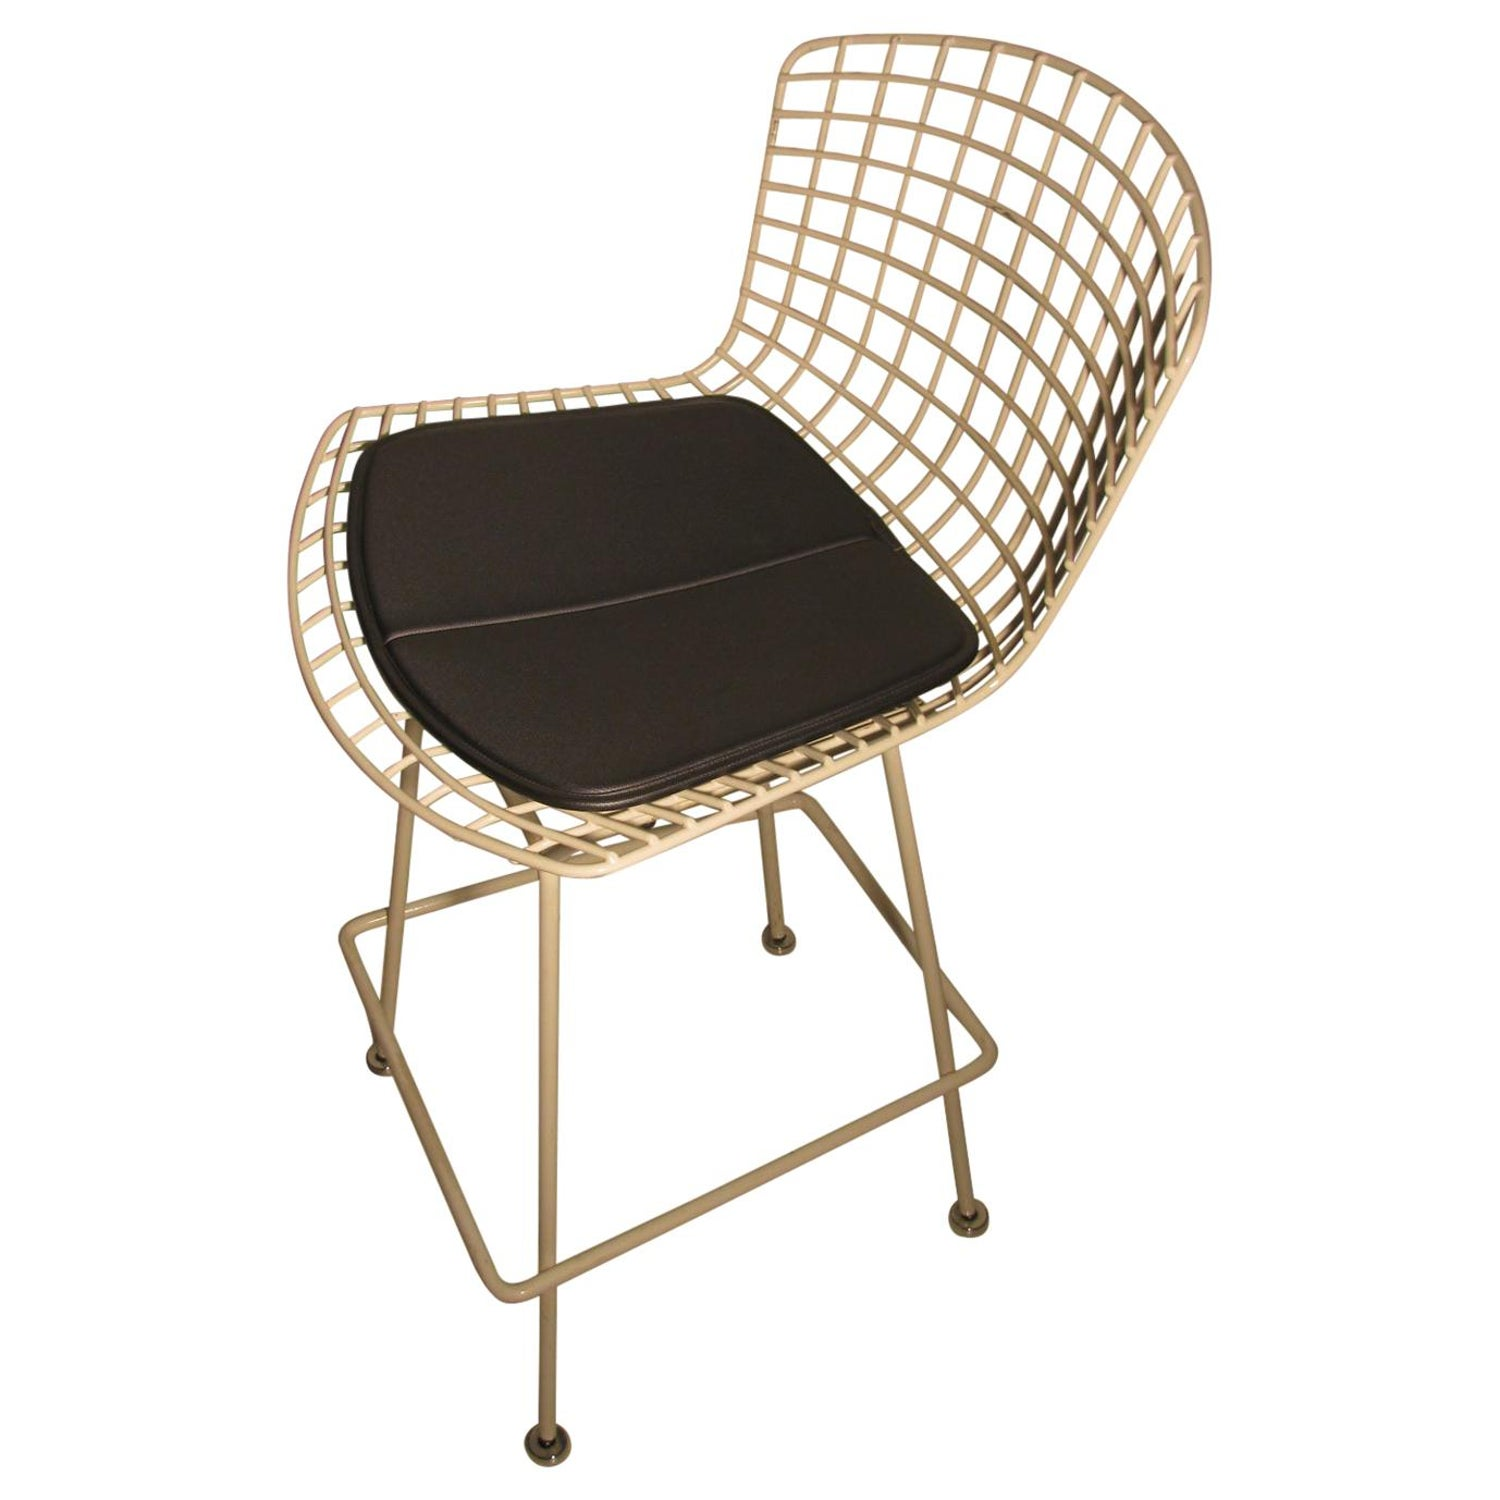 Marvelous Harry Bertoia Stools 12 For Sale At 1Stdibs Beatyapartments Chair Design Images Beatyapartmentscom